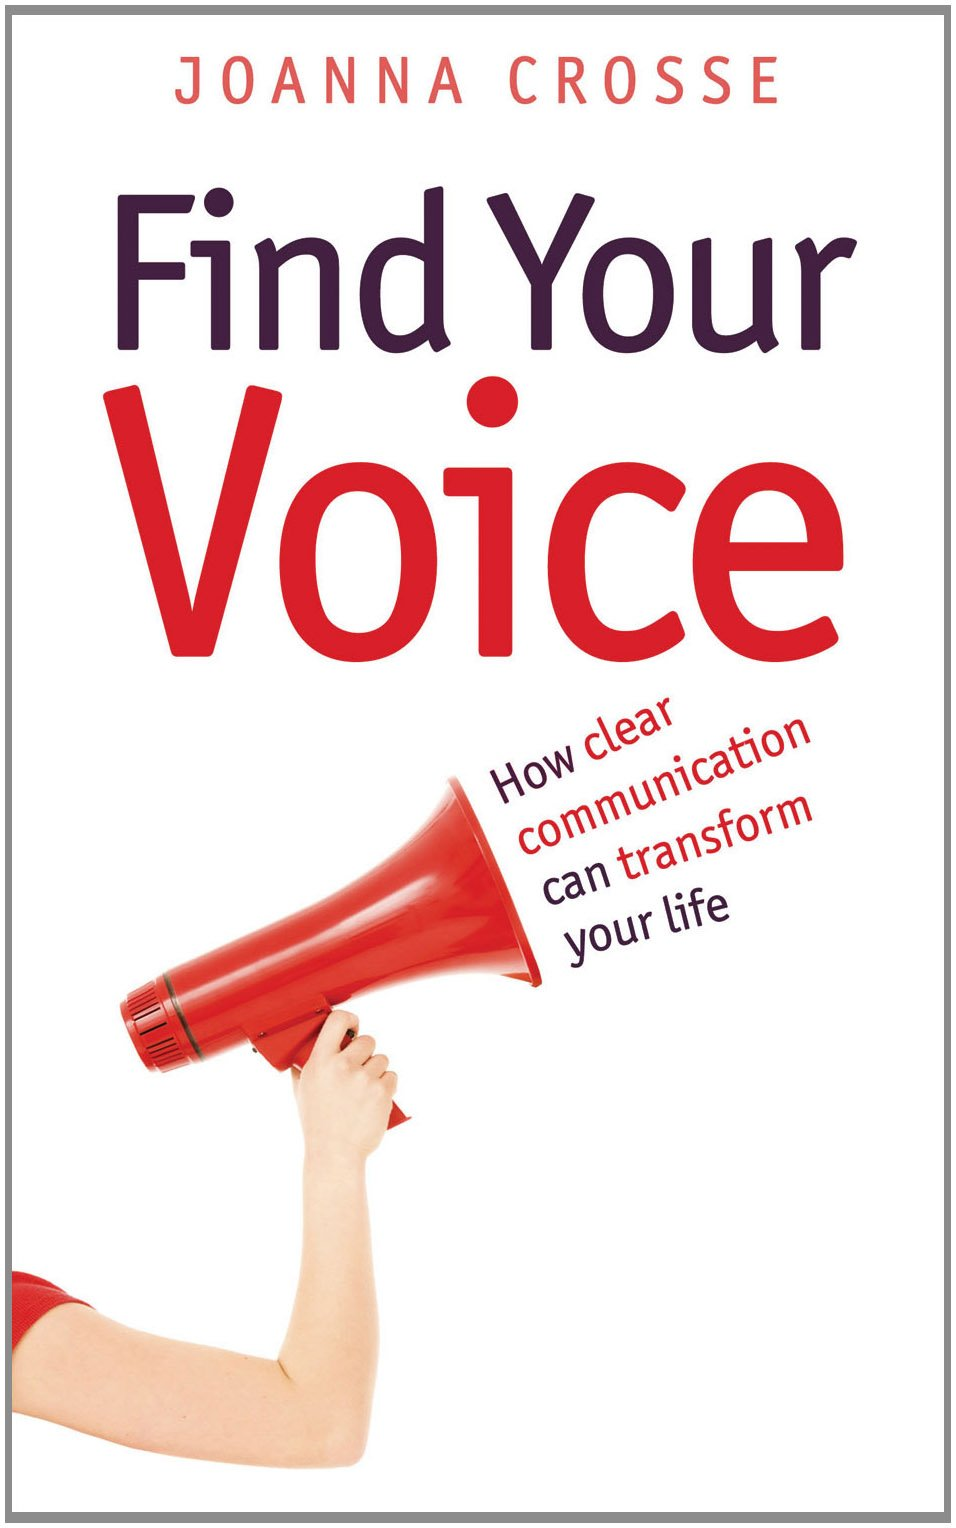 Image of book, Find Your Voice - Joanna Crosse, MetaMedia